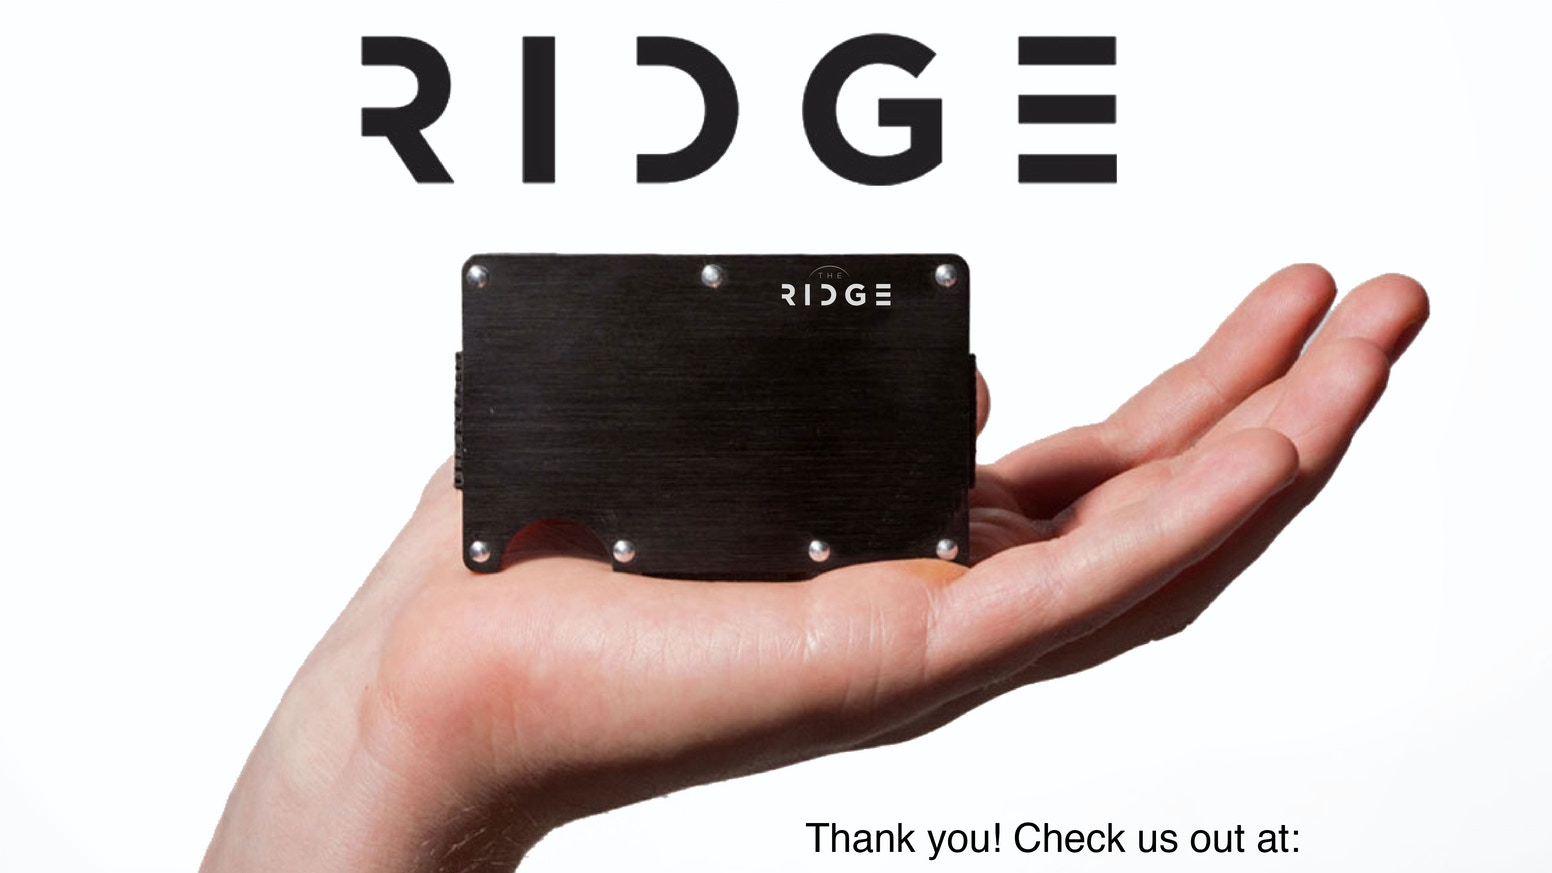 More than a minimalist wallet. An Aluminum, Titanium, and Carbon Fiber RFID-blocking card holder and money clip.